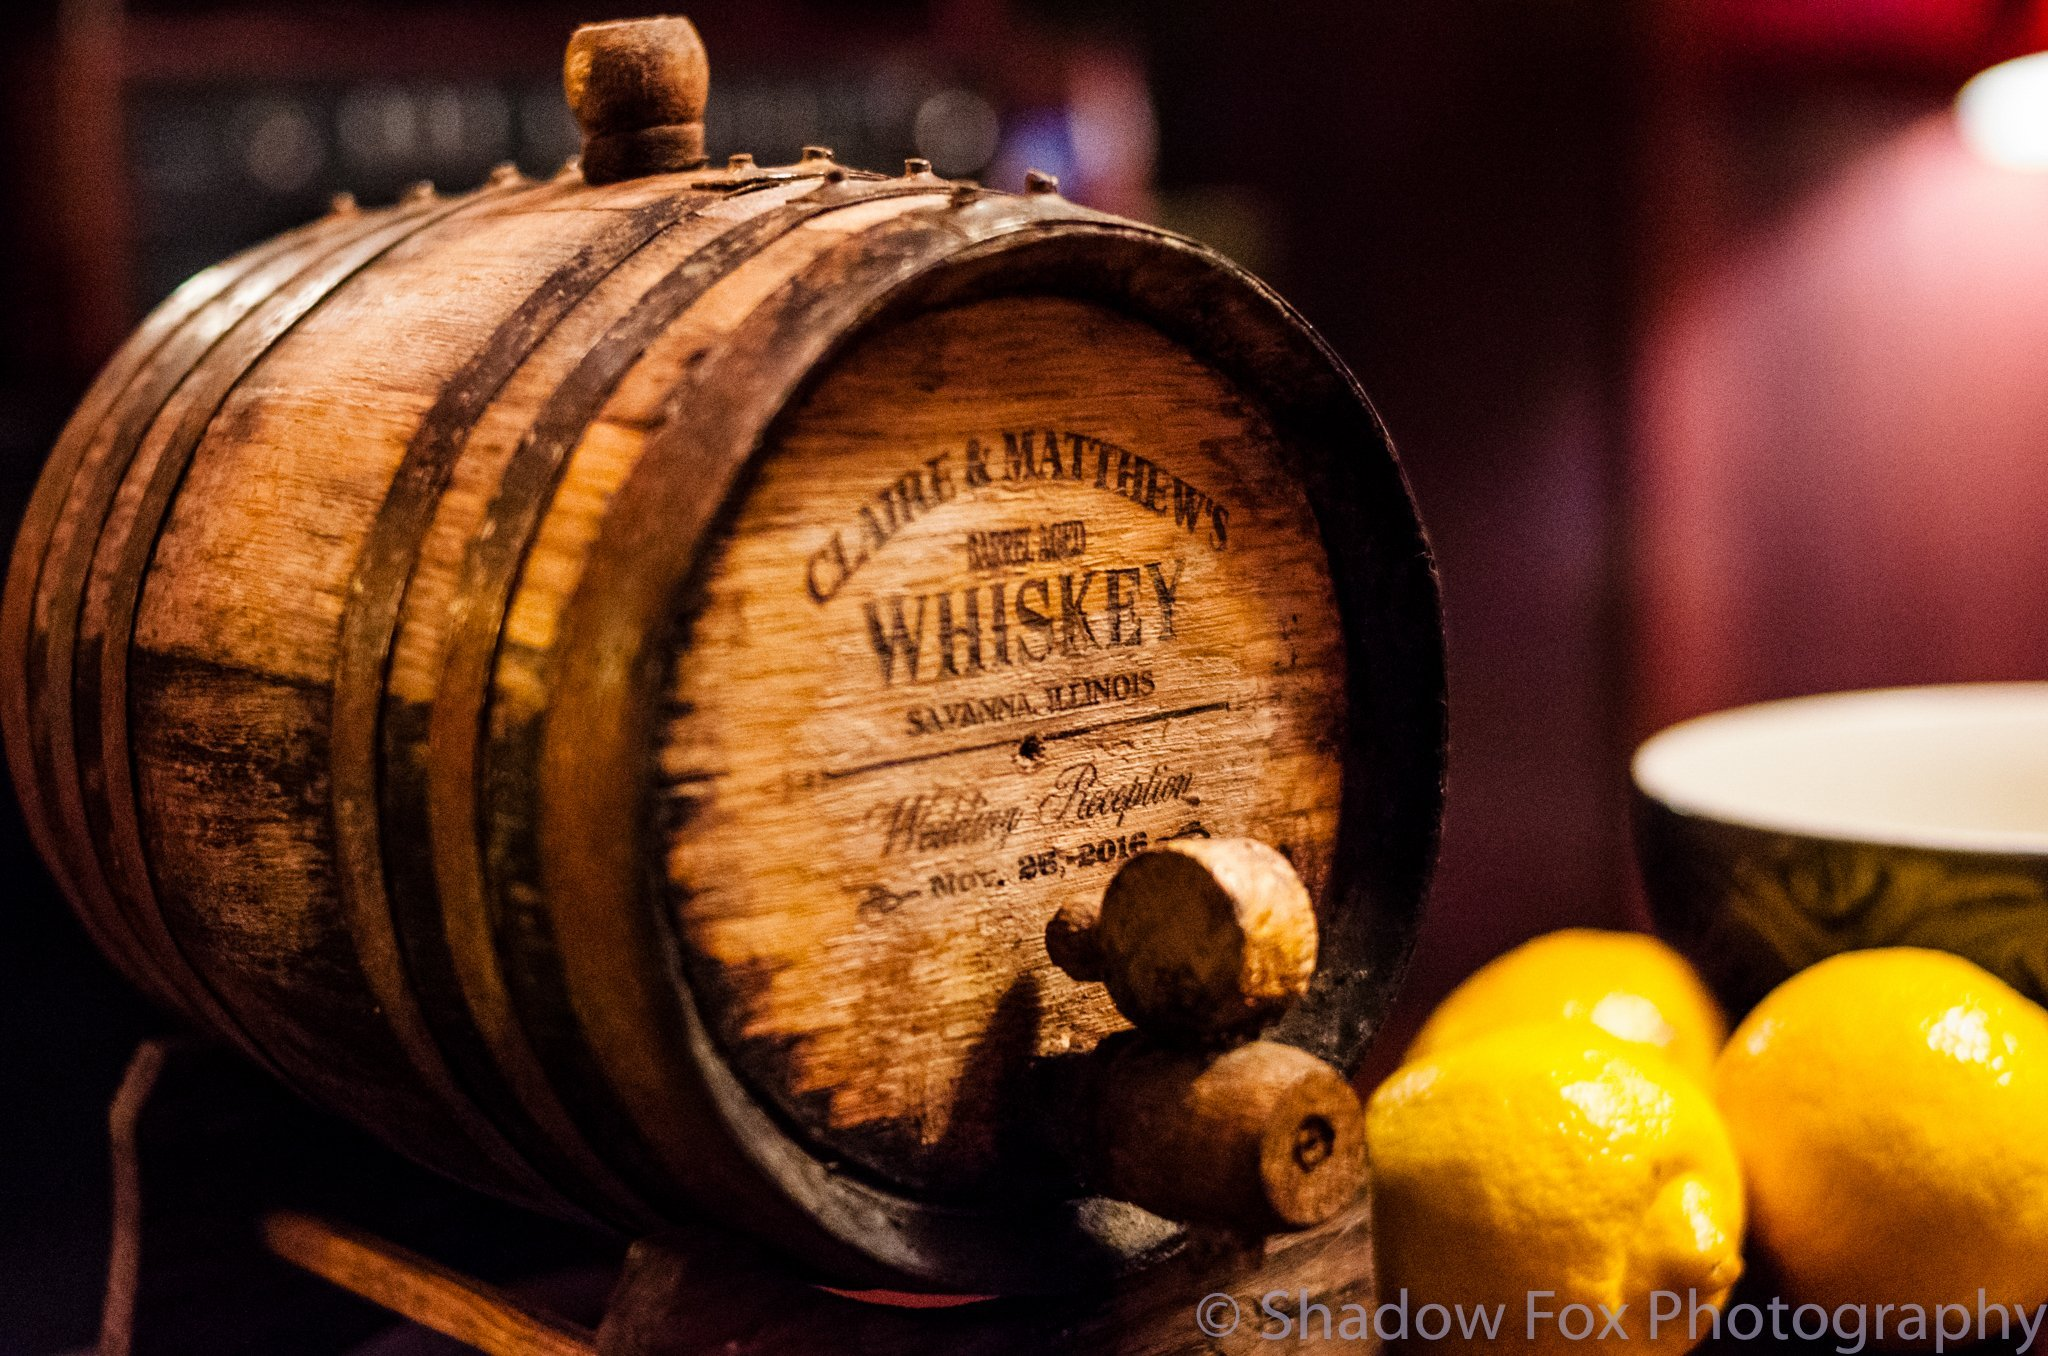 The best barrel-aged whiskey at a wedding